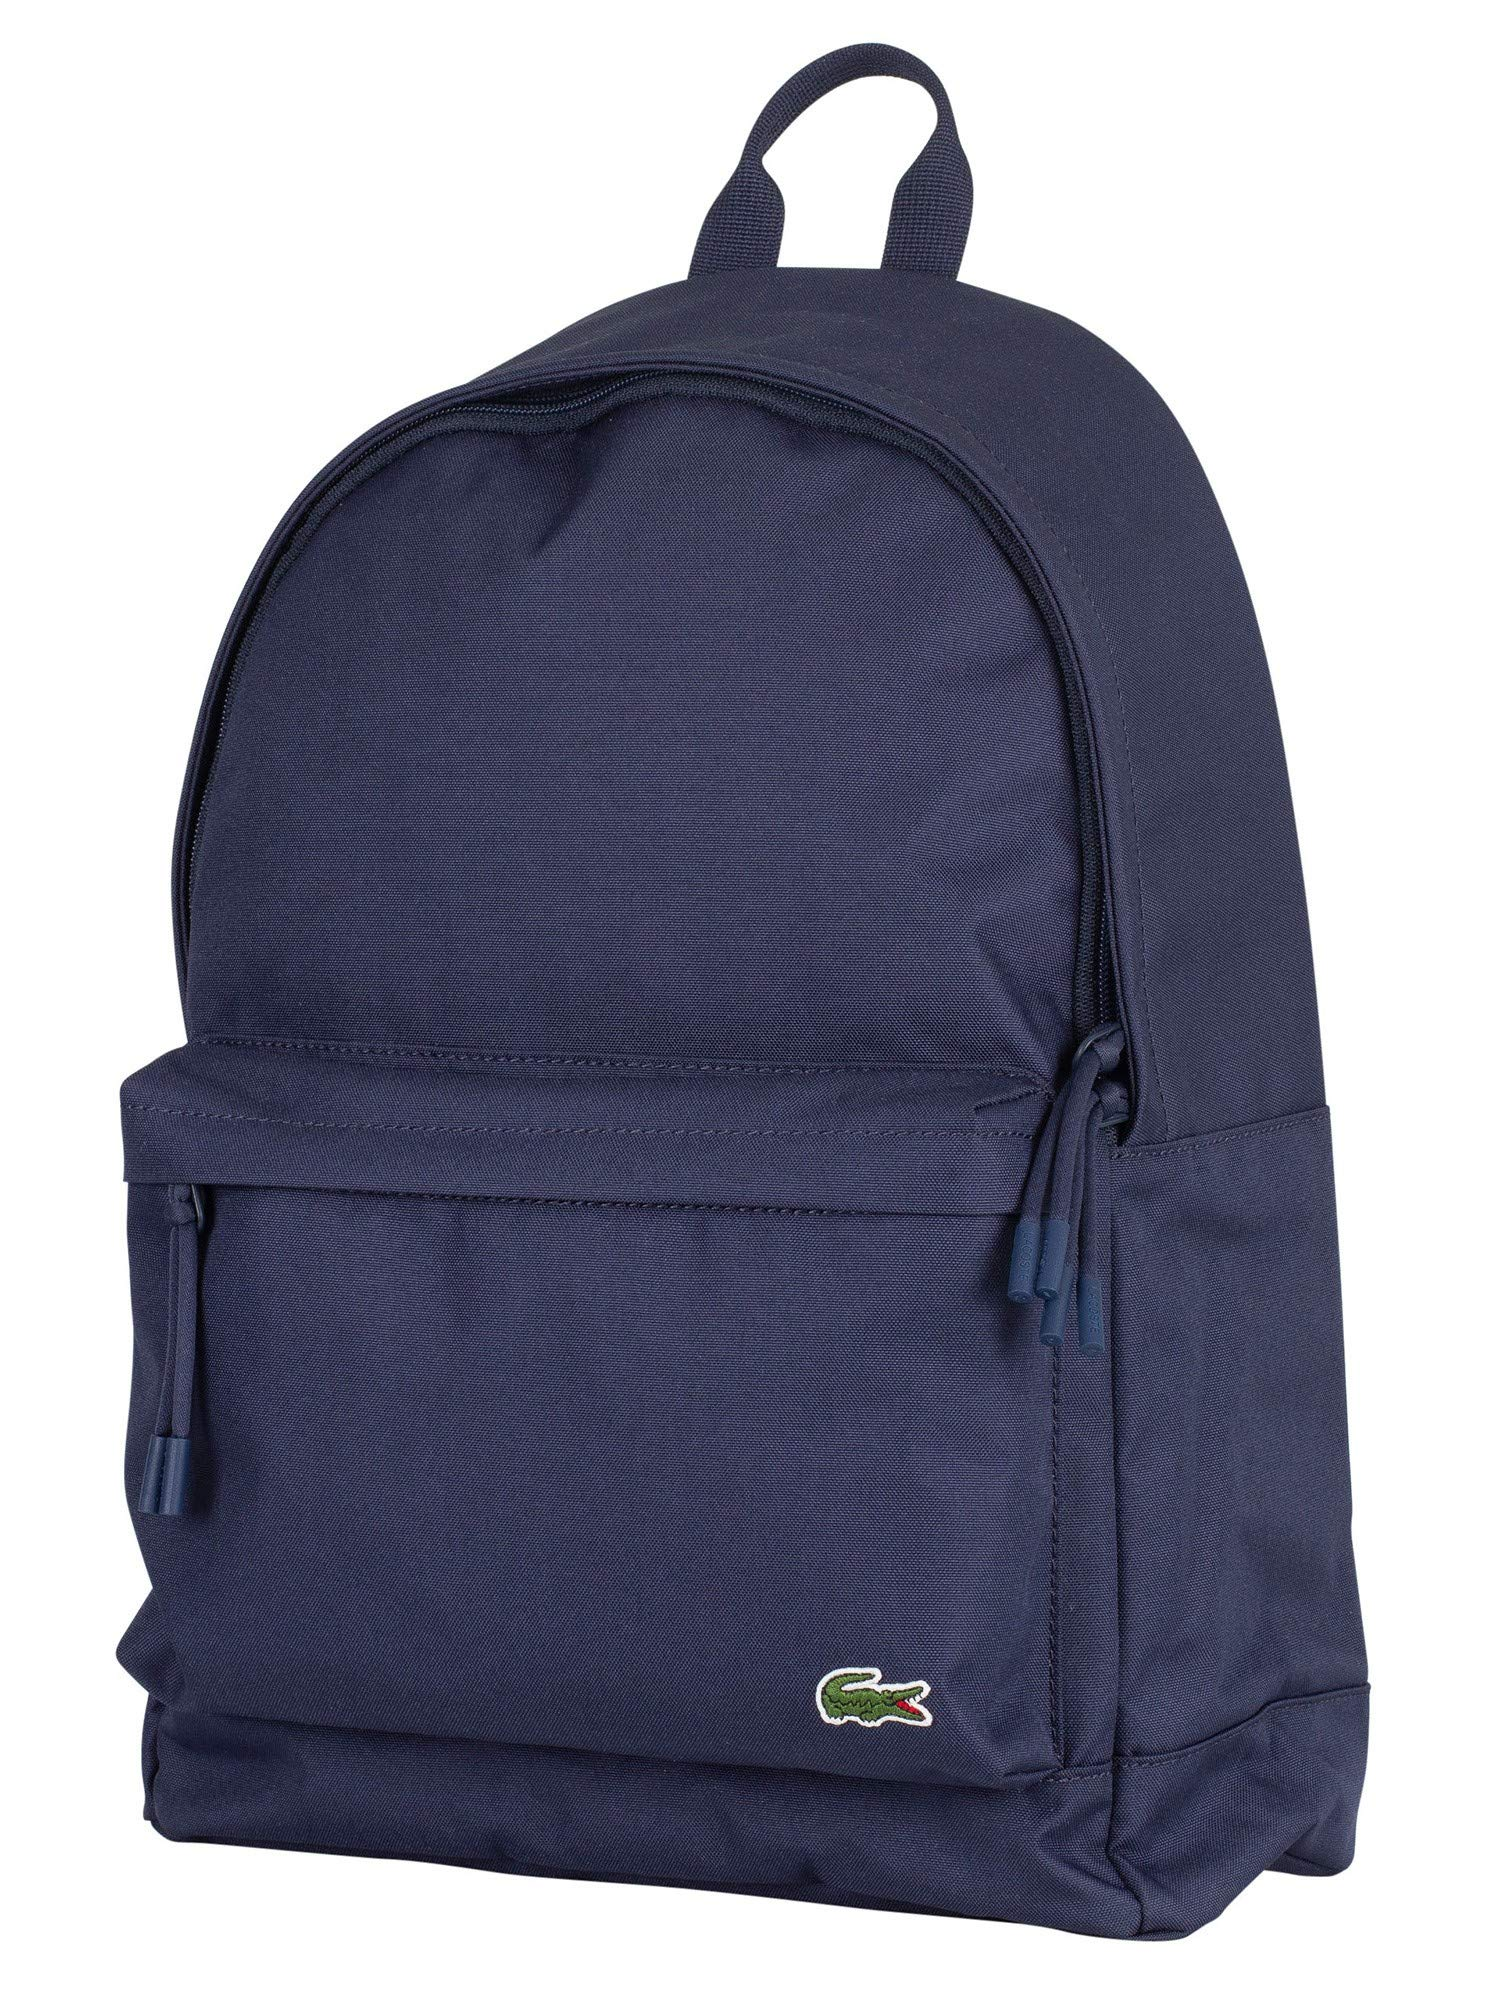 Lacoste Mens Backpack - Peacoat Navy